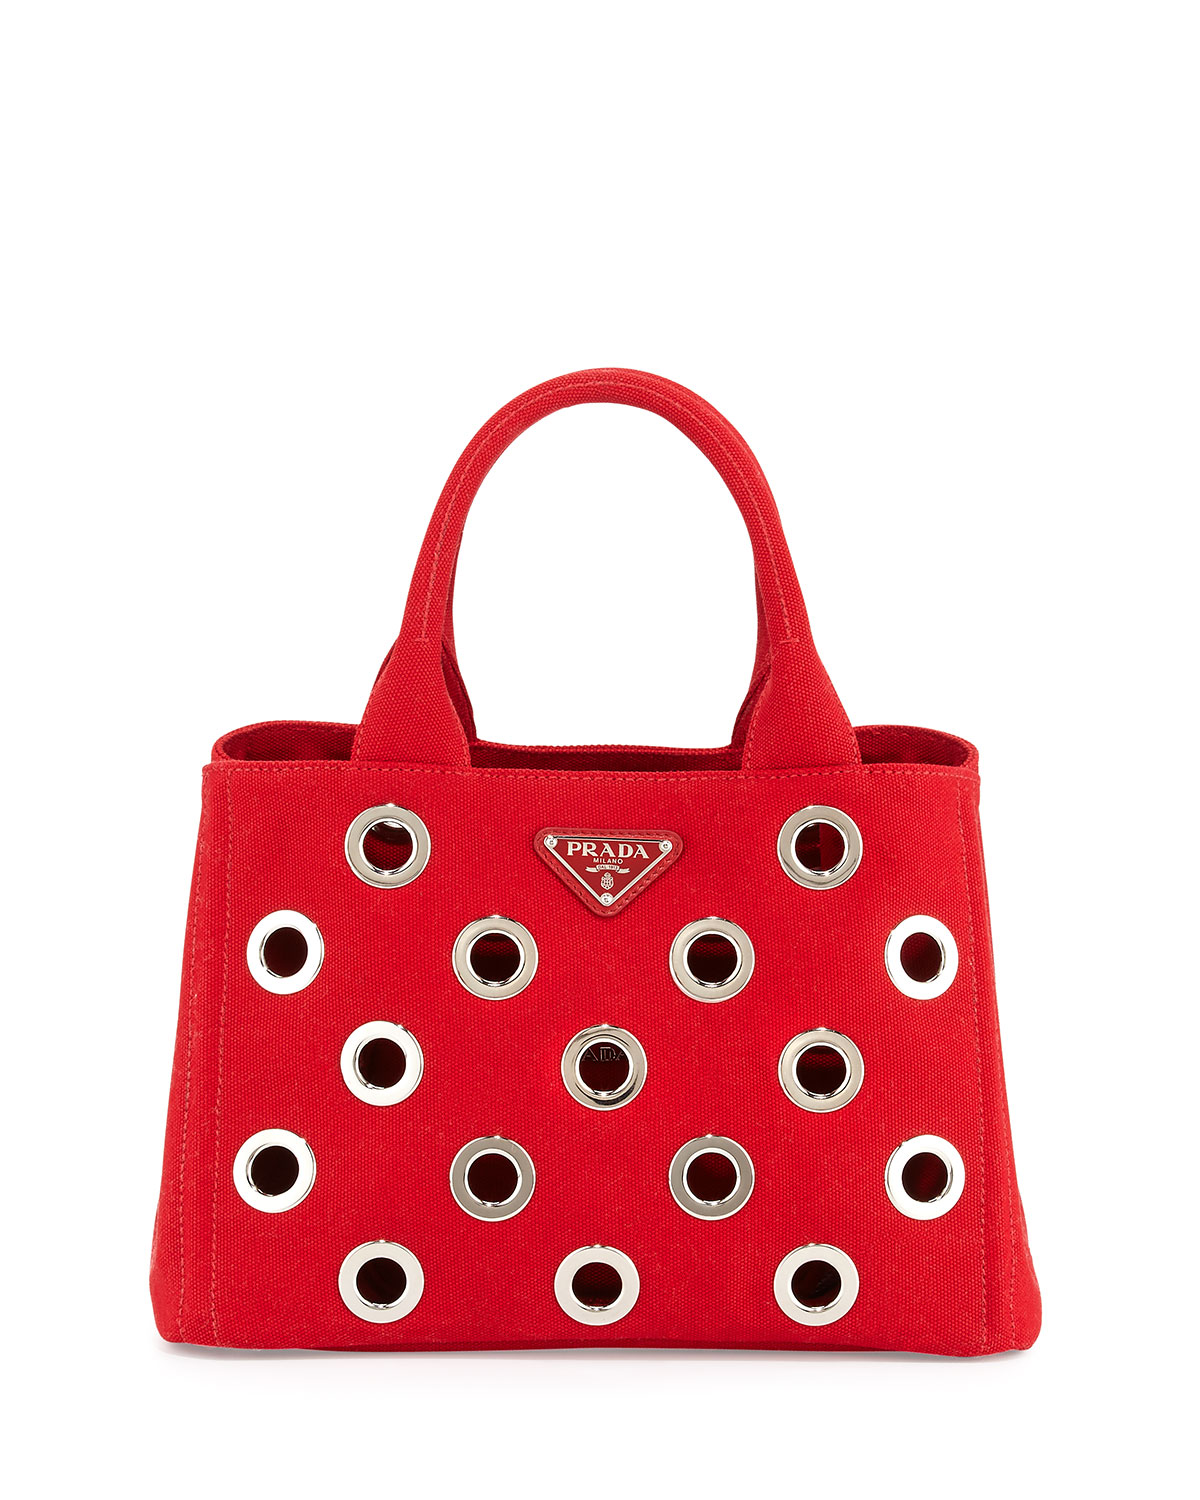 f56358d2f5ab81 Prada Canapa Grommet Small Garden Tote Bag, Red (Rosso) | Neiman Marcus